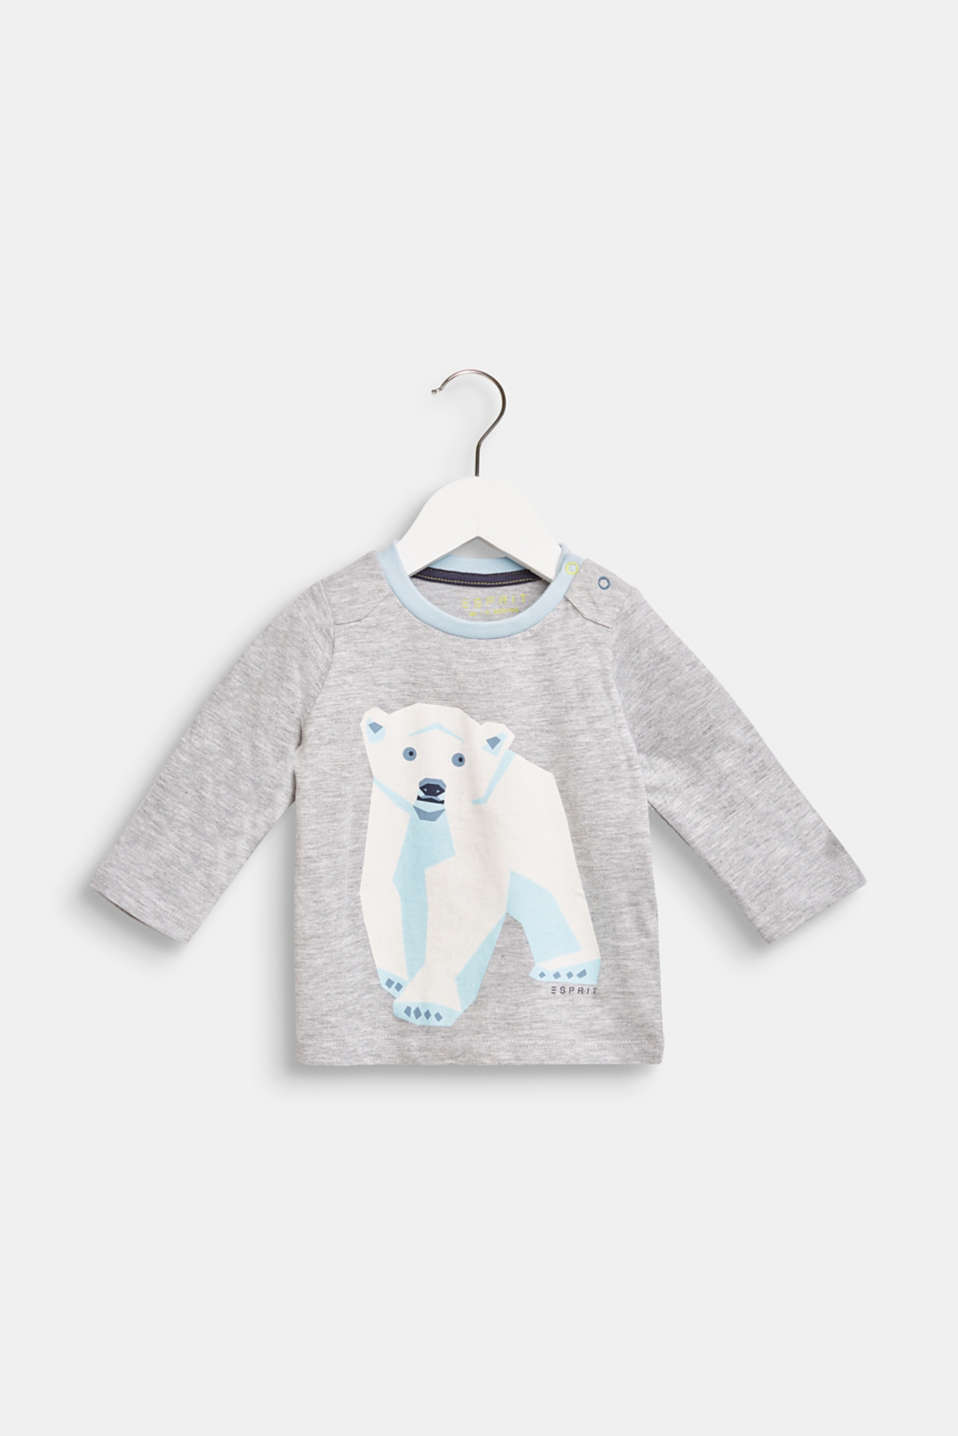 Esprit - Long sleeve top with a polar bear print, 100% cotton